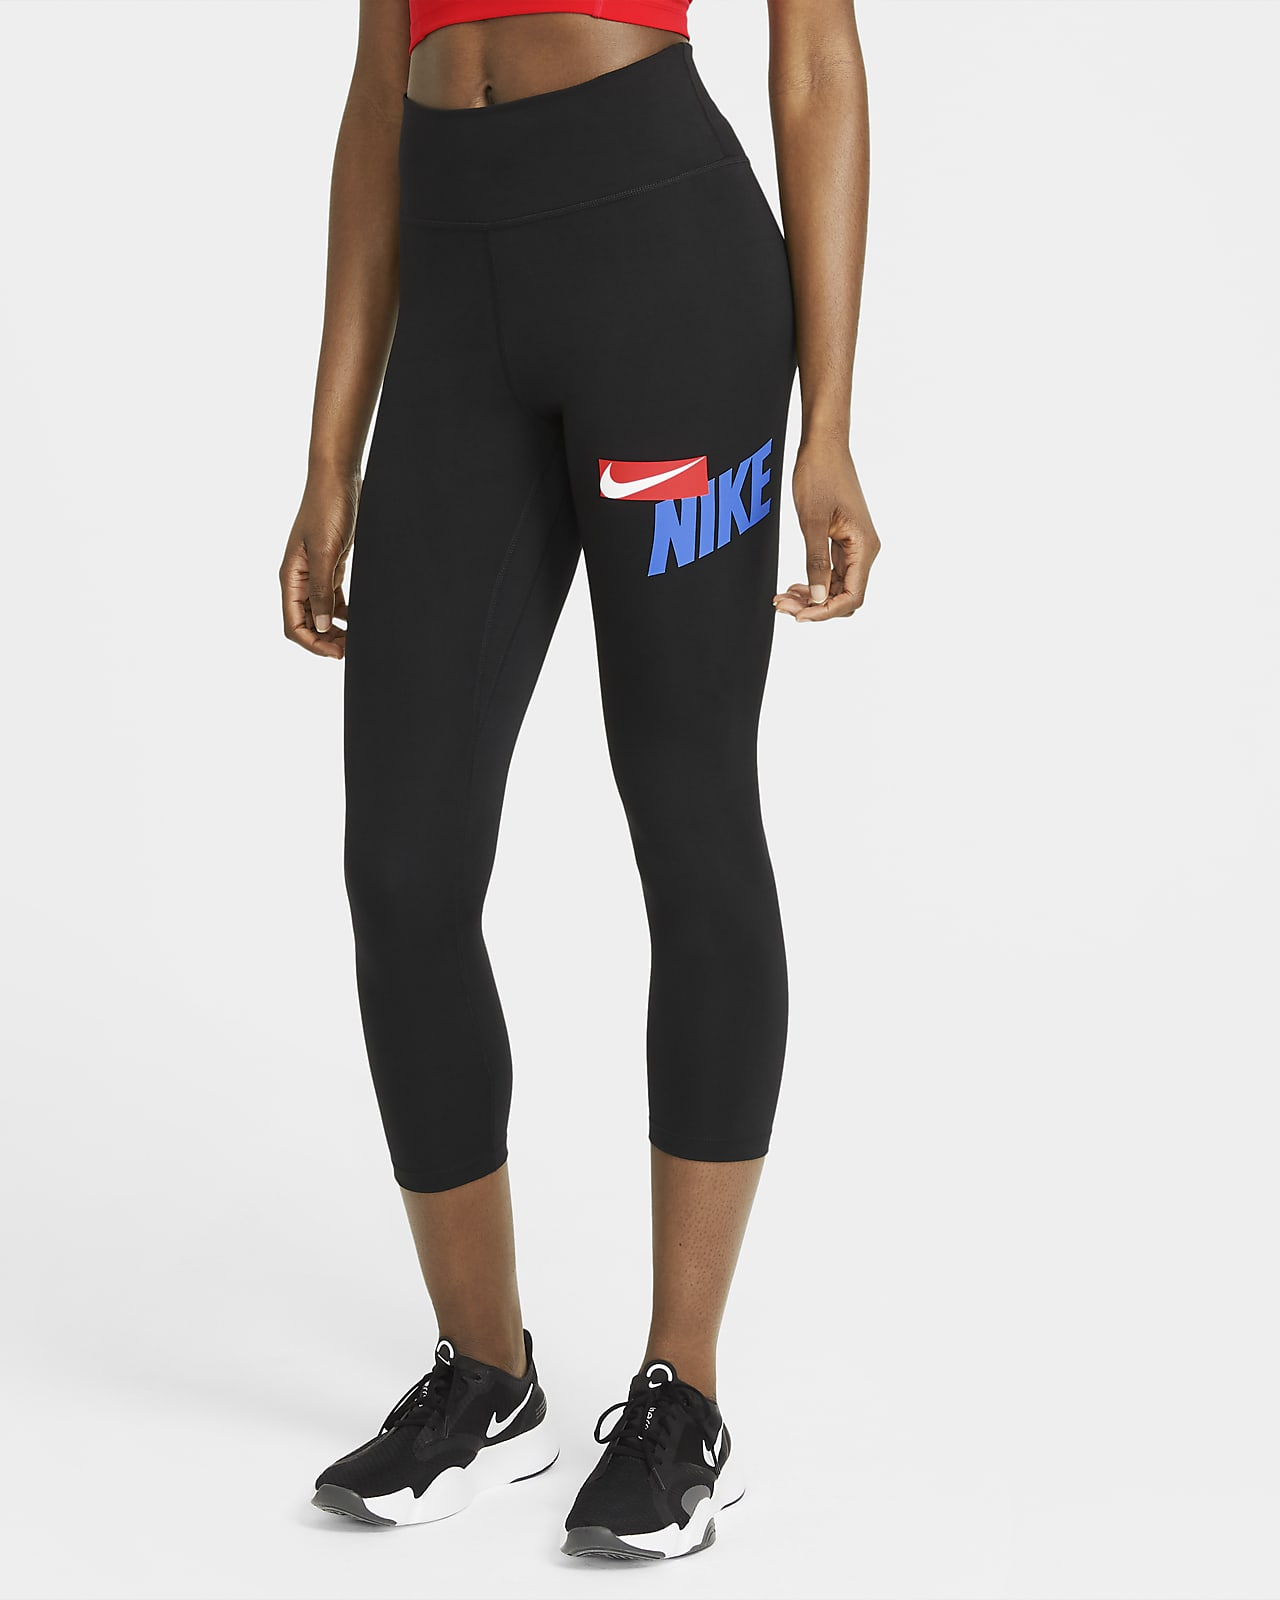 Nike One Women's Mid-Rise Crop Graphic Leggings